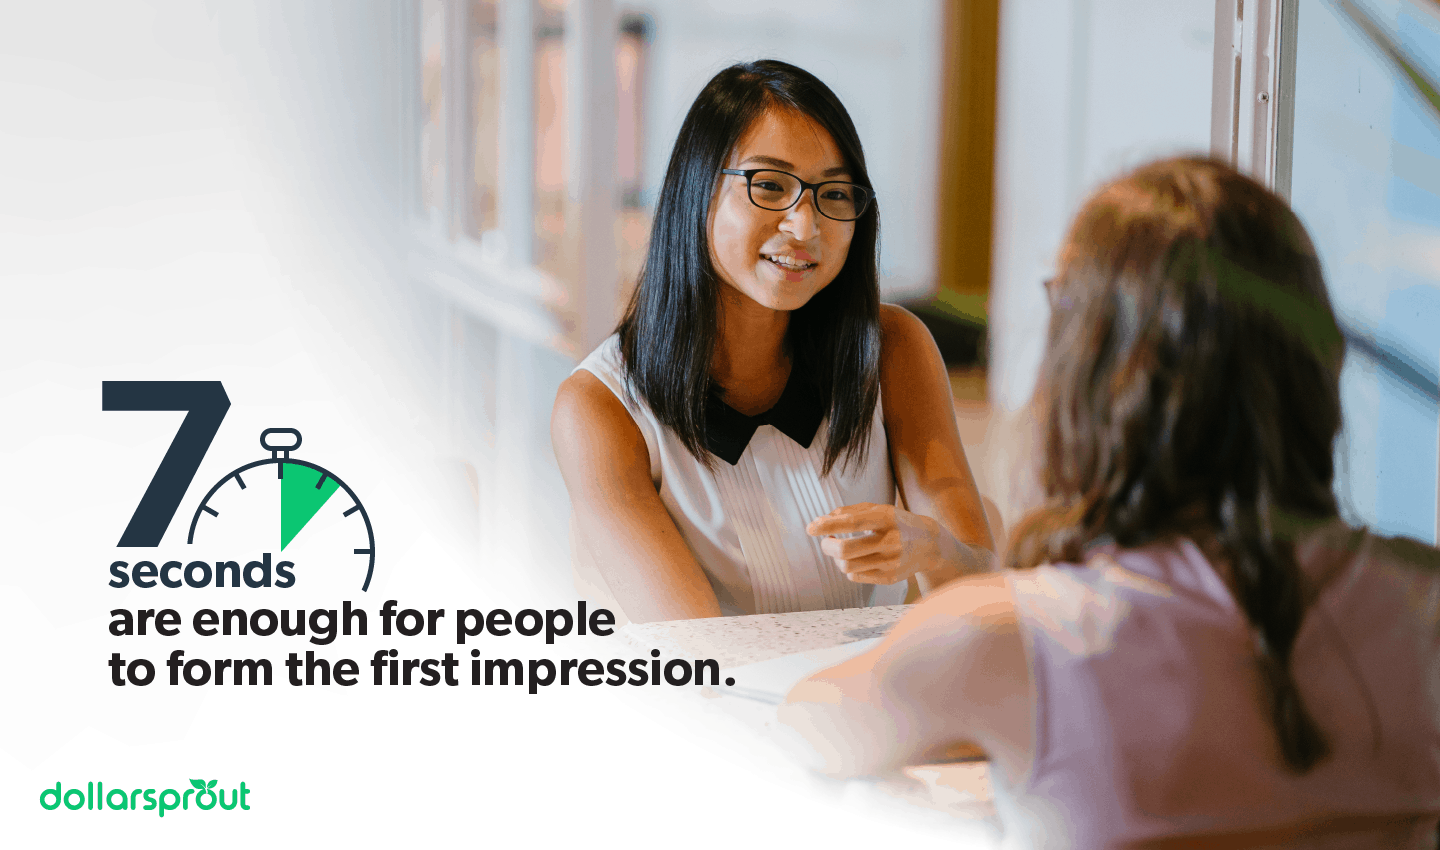 7 seconds to form a first impression